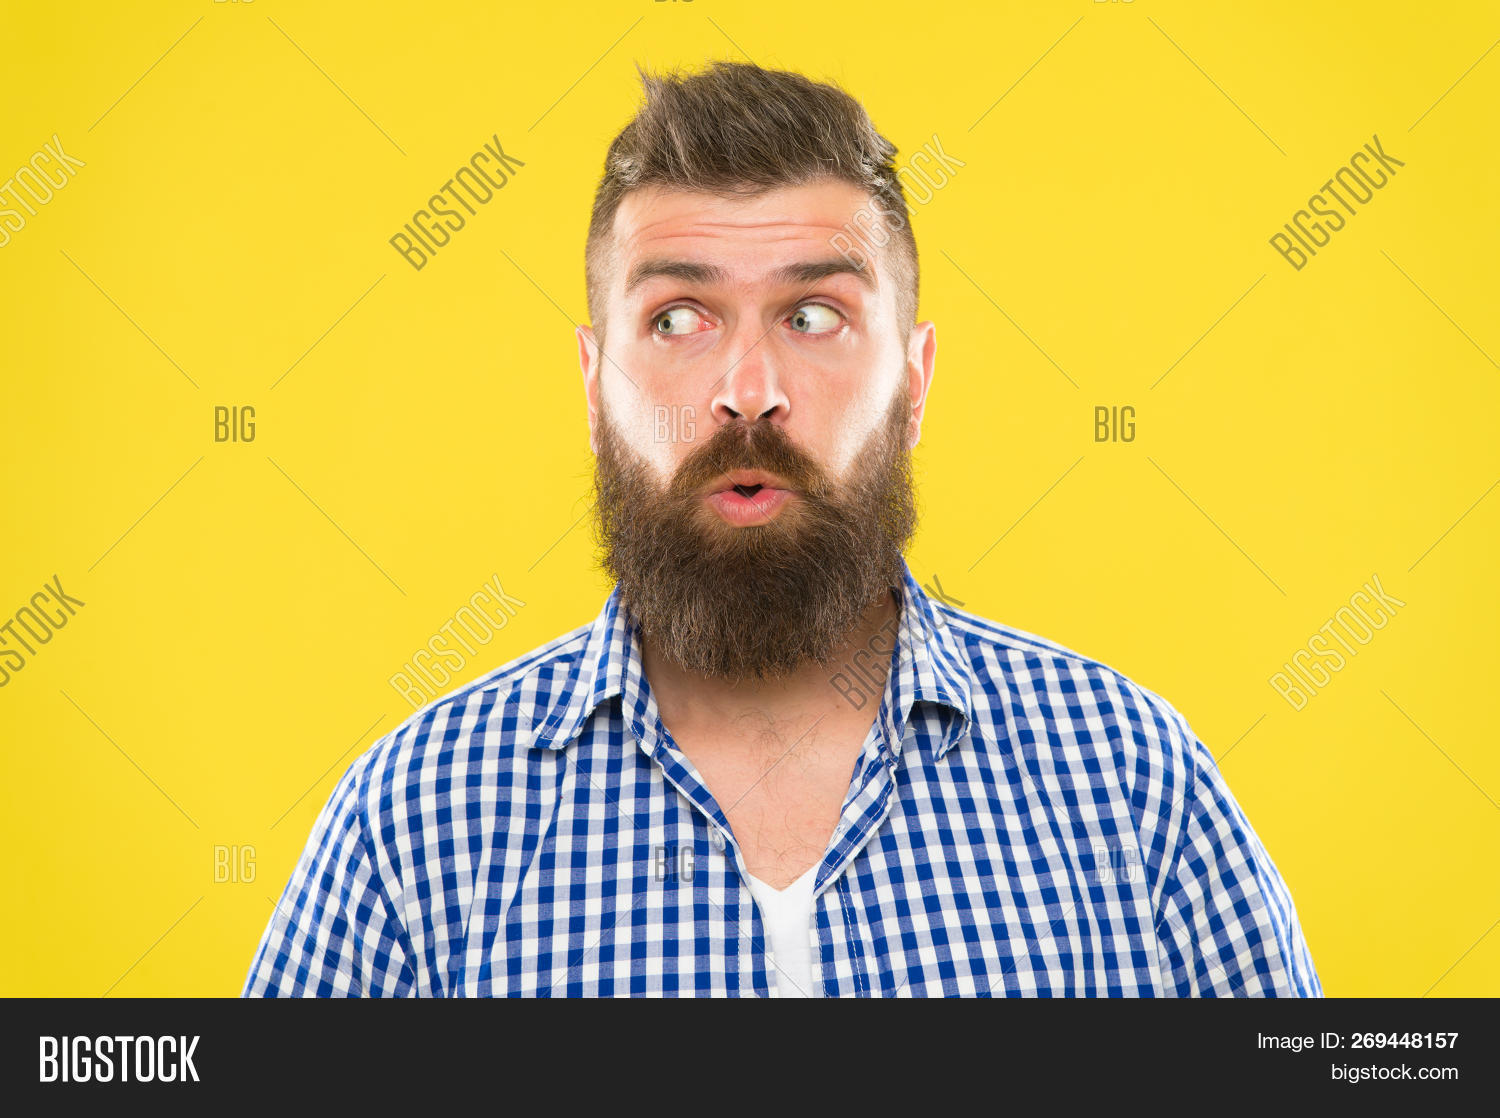 adult,background,beard,bearded,brutal,brutality,casual,caucasian,close,emotion,emotional,expression,eyes,face,guy,handsome,hipster,macho,male,man,masculinity,mustache,news,open,rustic,shirt,stunned,style,stylish,surprise,surprised,surprising,unshaven,up,wide,wonder,wondering,yellow,young